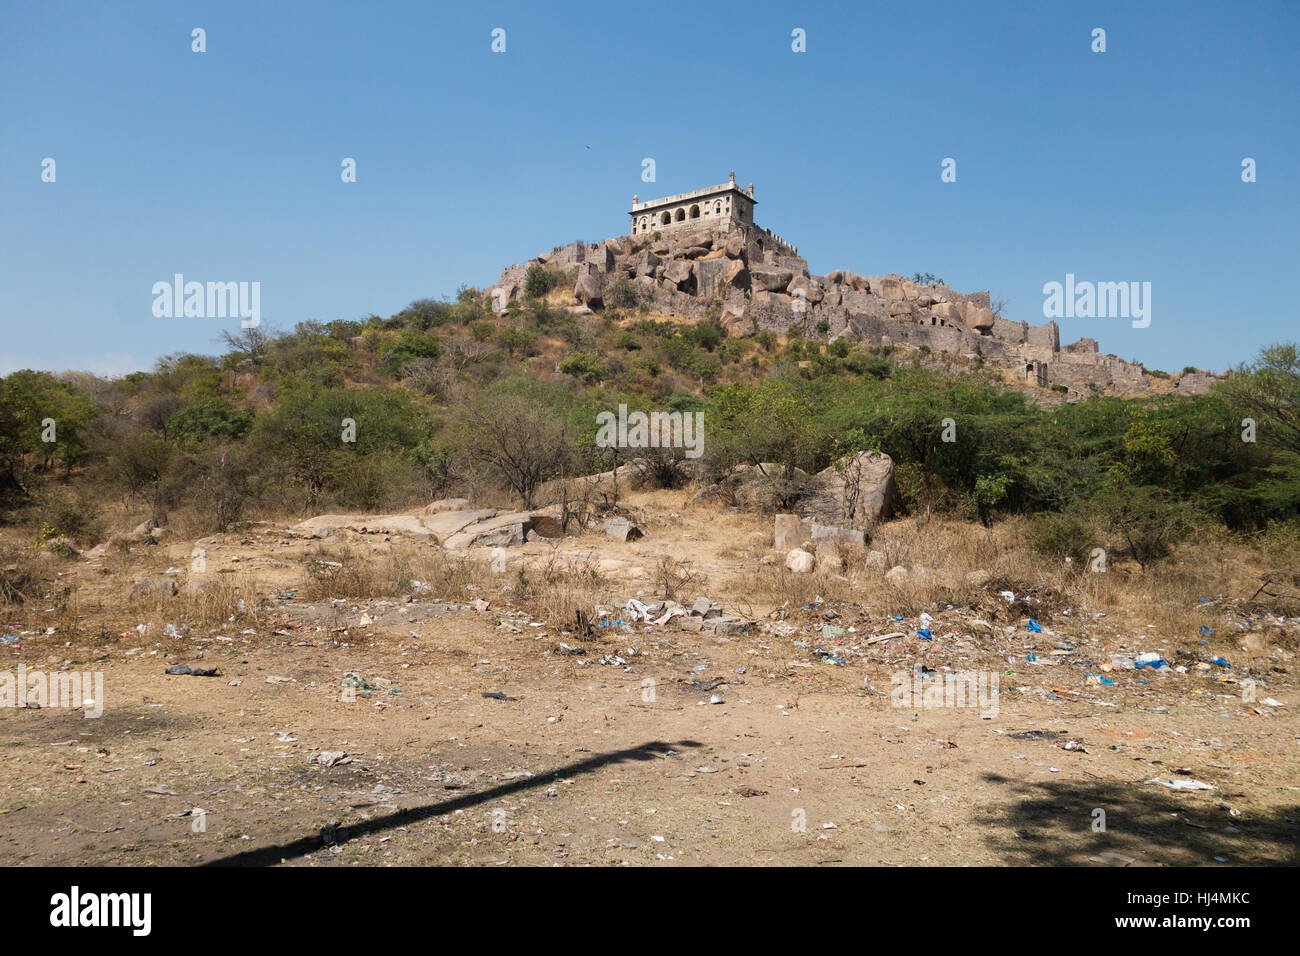 400 year old Golconda Fort in Hyderabad,India - Stock Image